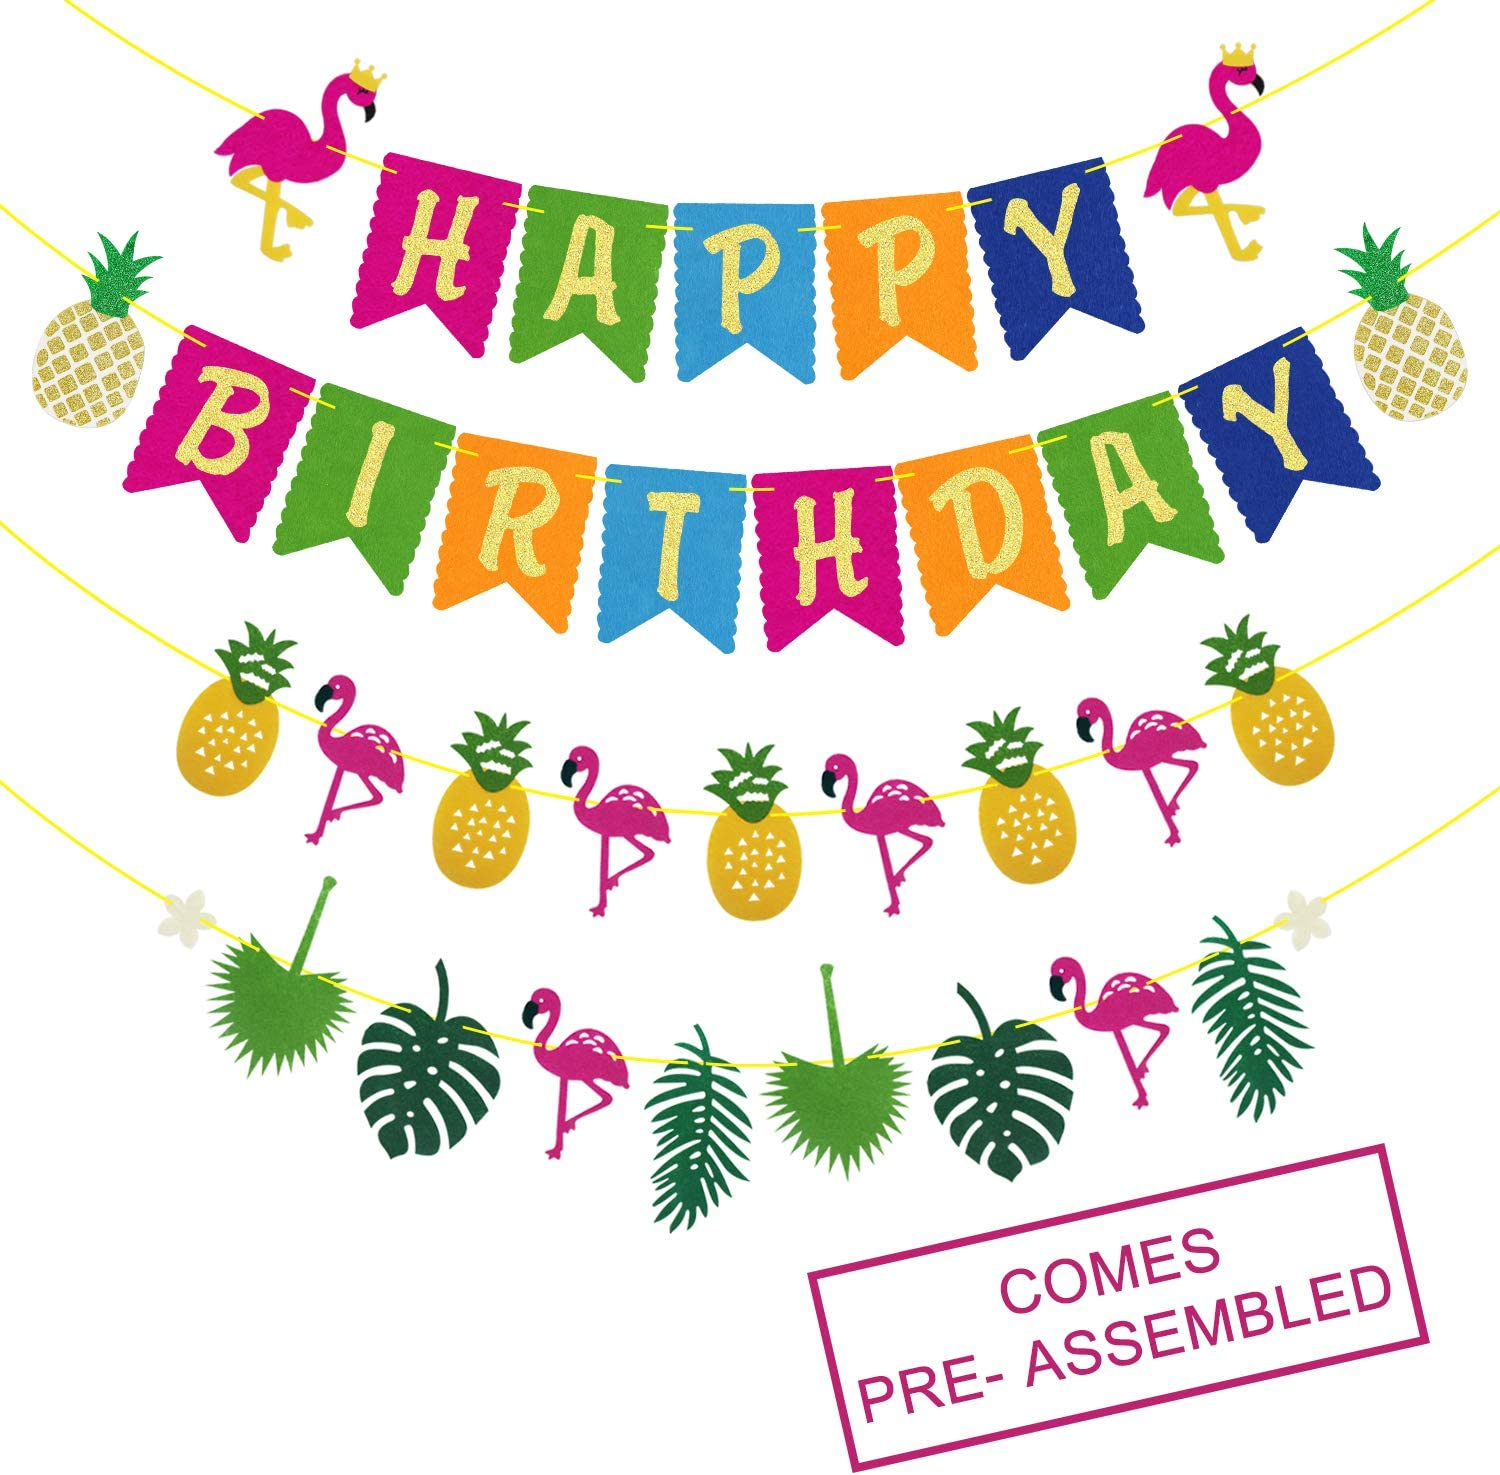 Hawaiian Happy Birthday Banner - Party Year-end annual account Decorations Luau Ranking TOP8